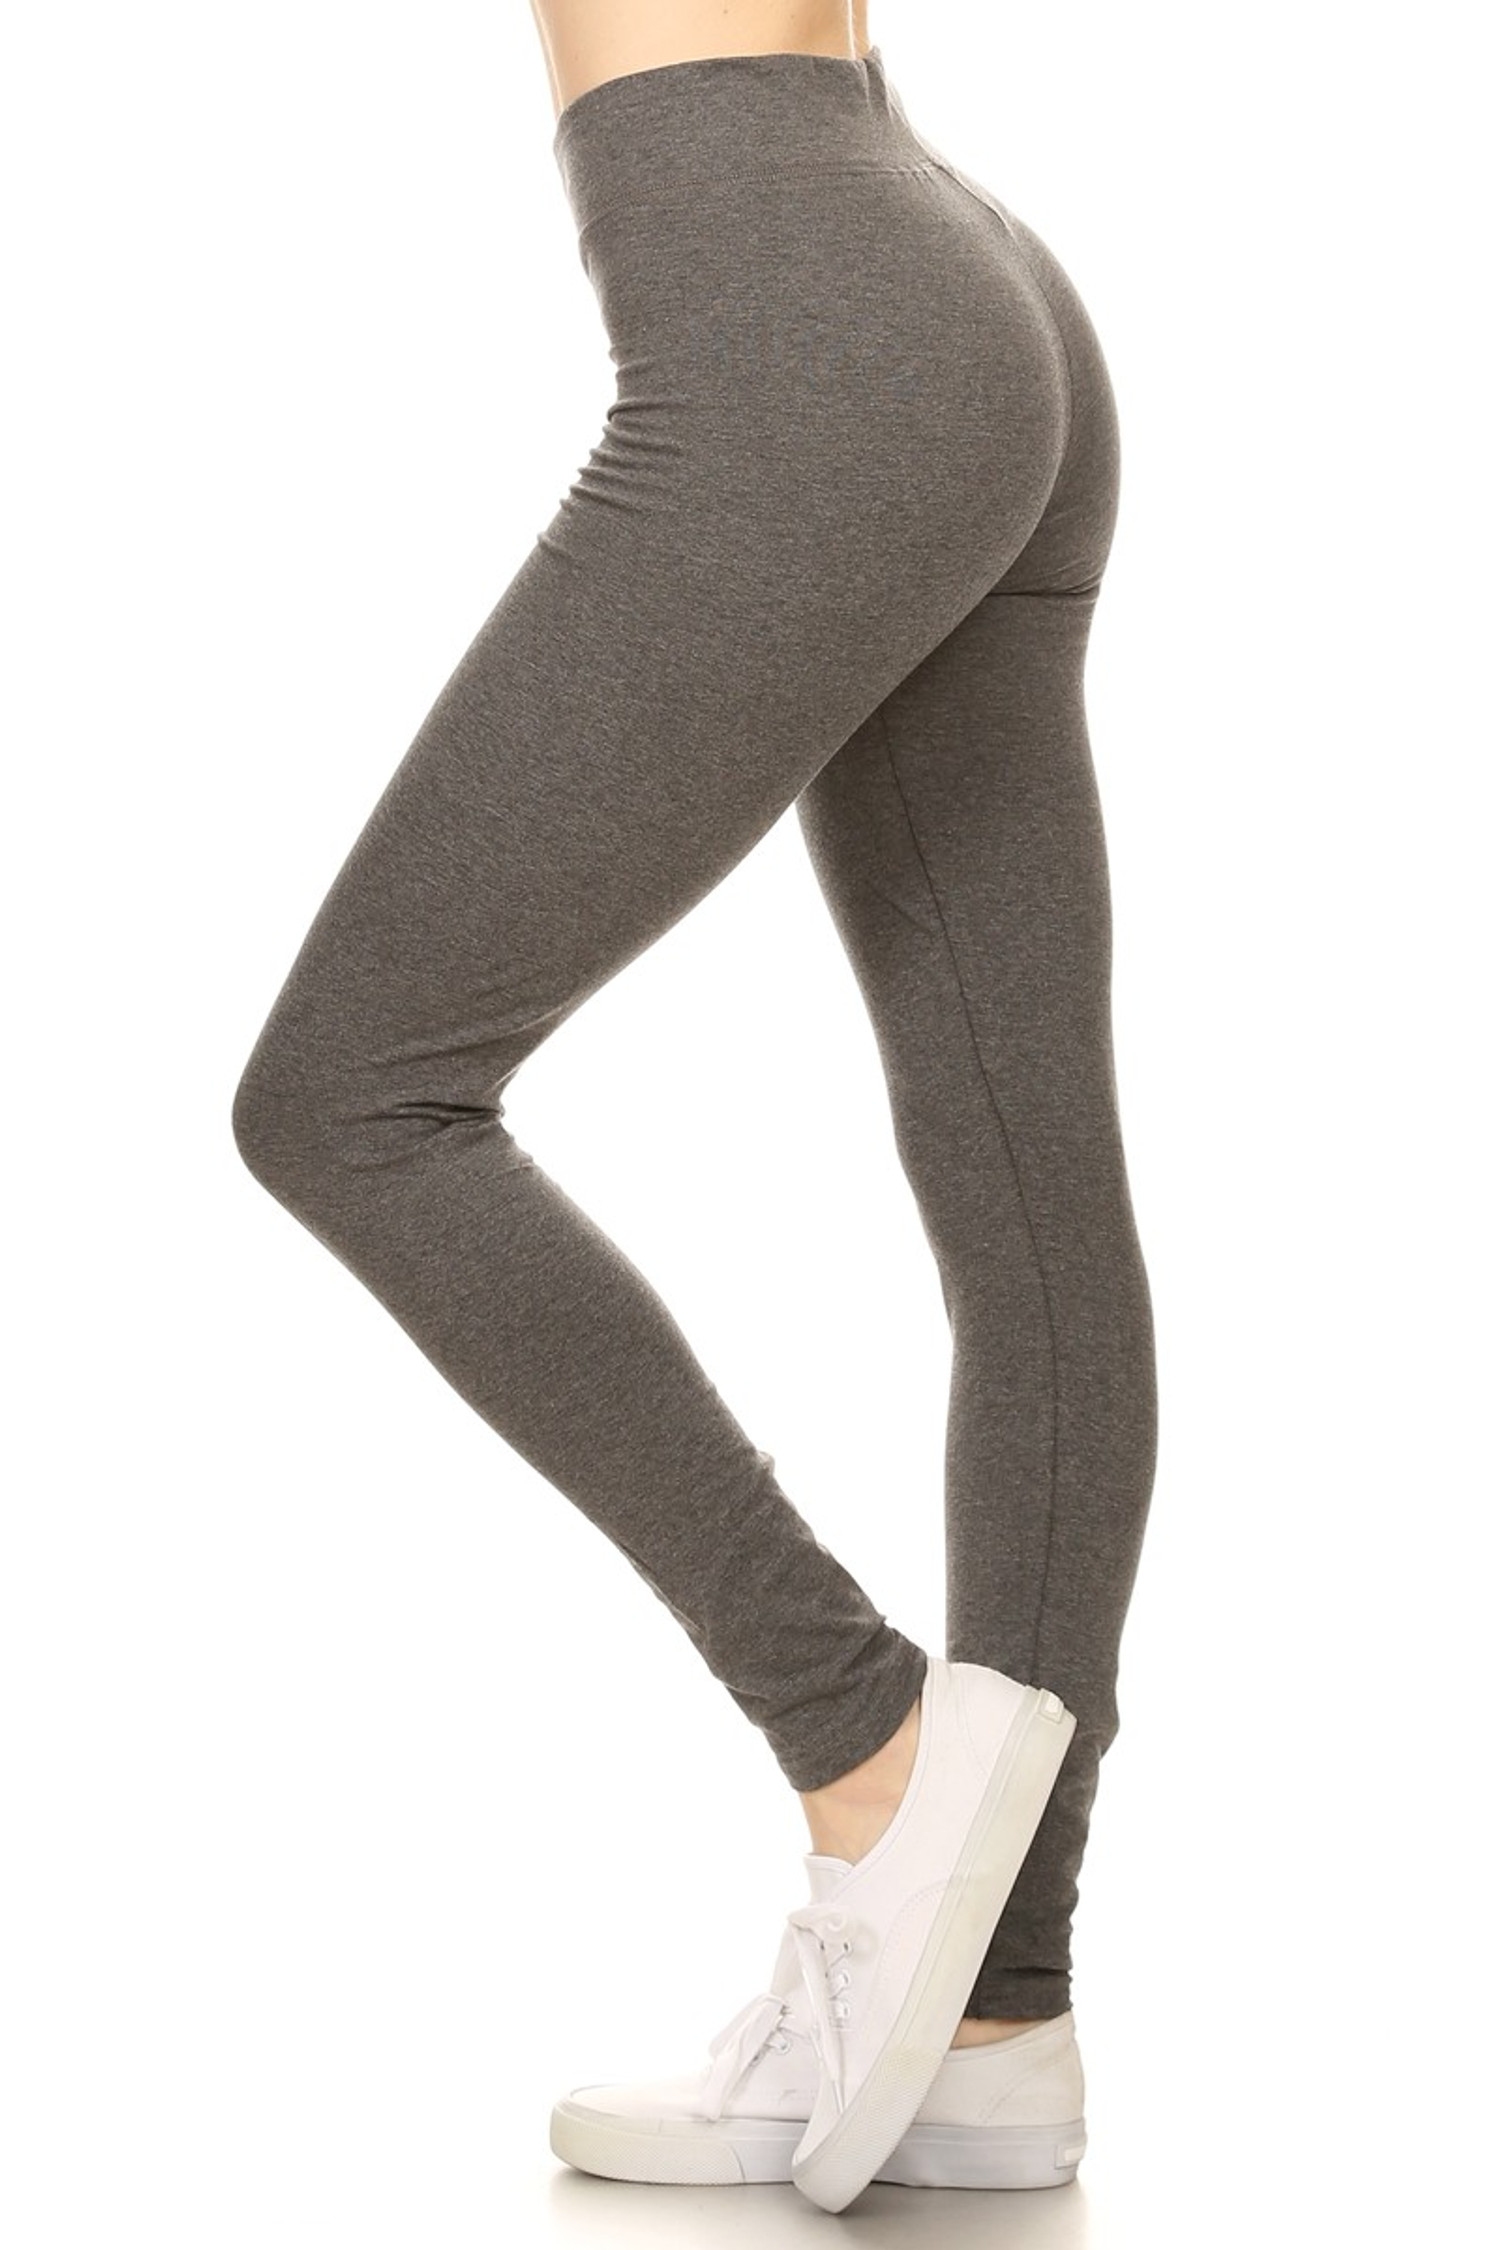 Side image of Charcoal High Waisted Cotton Sport Leggings